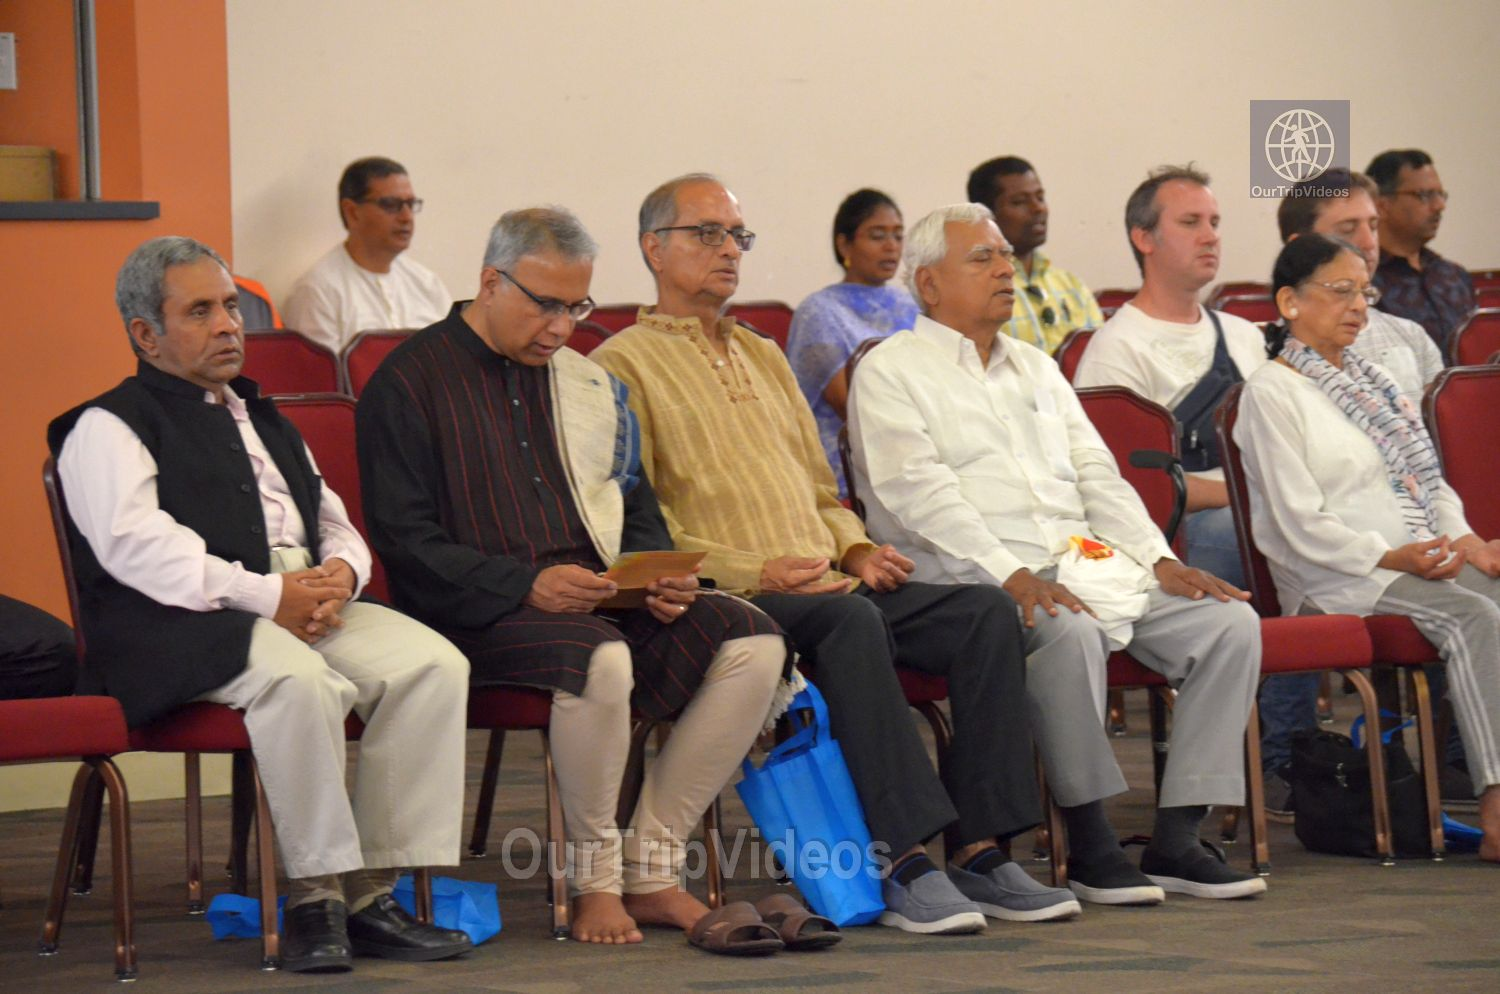 International Yoga Day at ICC, Milpitas, CA, USA - Picture 24 of 25